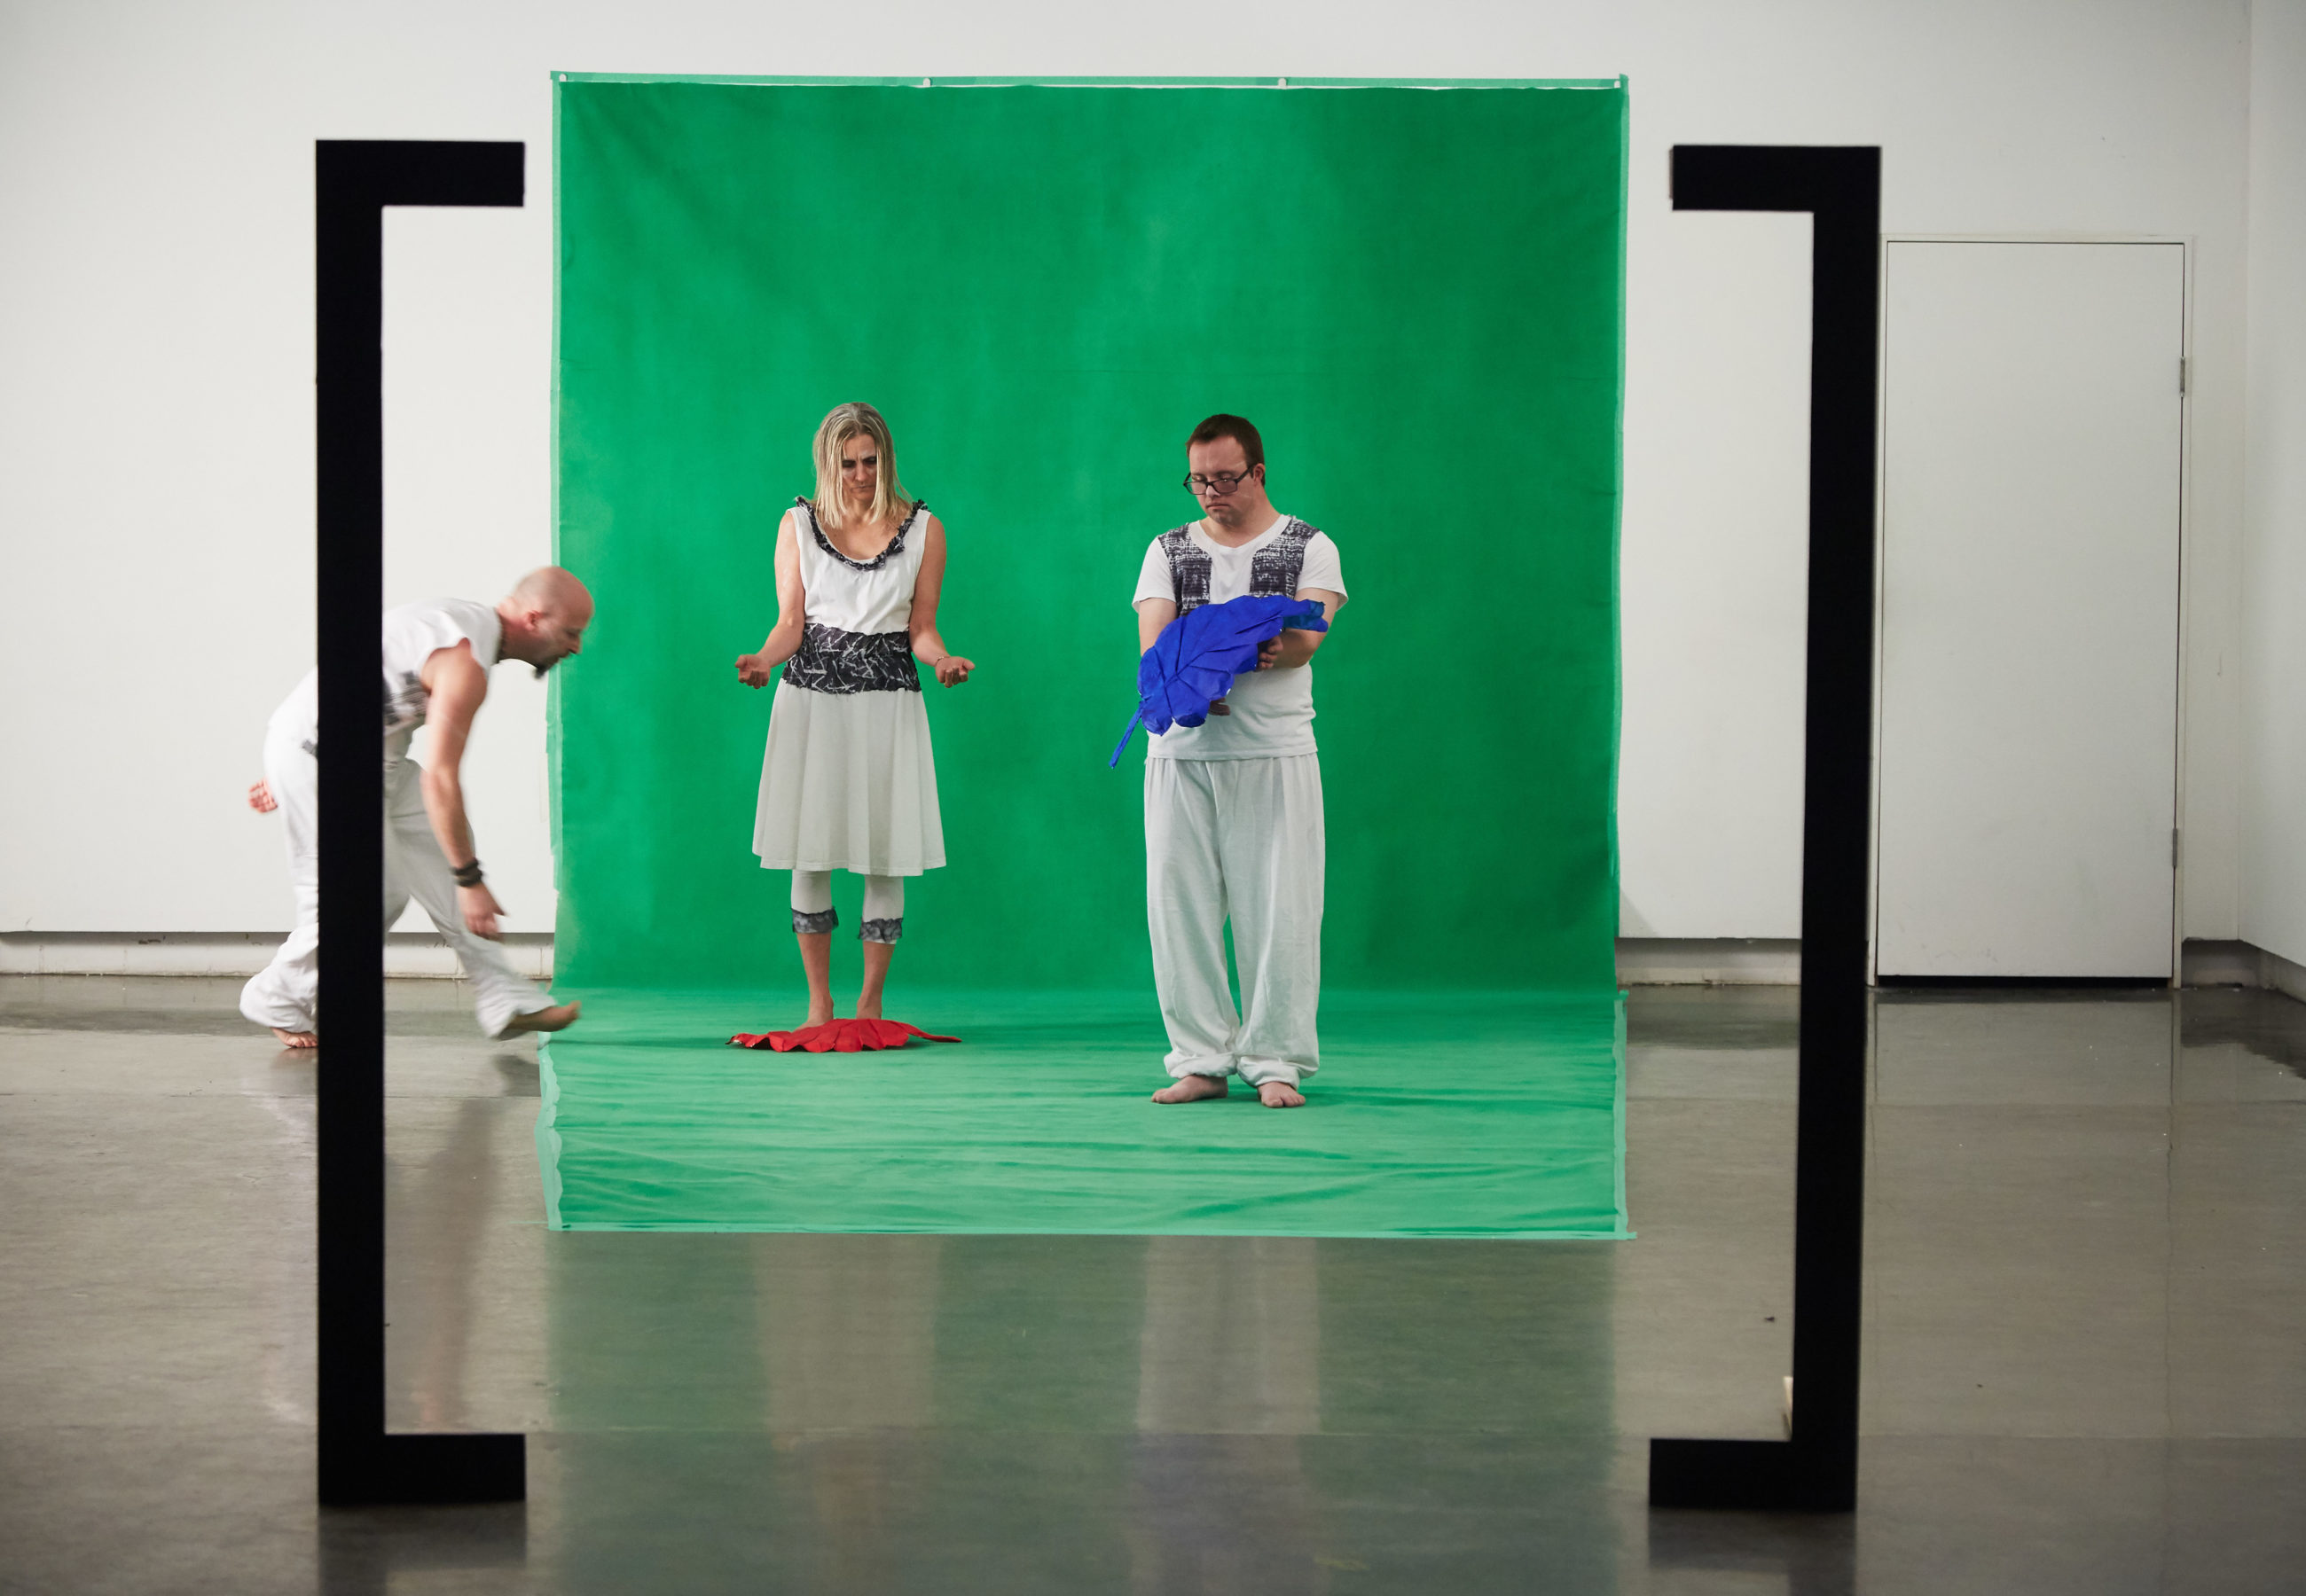 Image shows an art performance happening in a studio space. A female and male performer stand against a green backdrop, facing the camera. There are two large black lines in the foreground, marking out a focal point around the green screen, as if the audience is viewing through a camera lens. The man holds a large blue leaf. There is a large red leaf at the feet of the woman. Another male performer is in the process of walking into the focal point, into the green space.